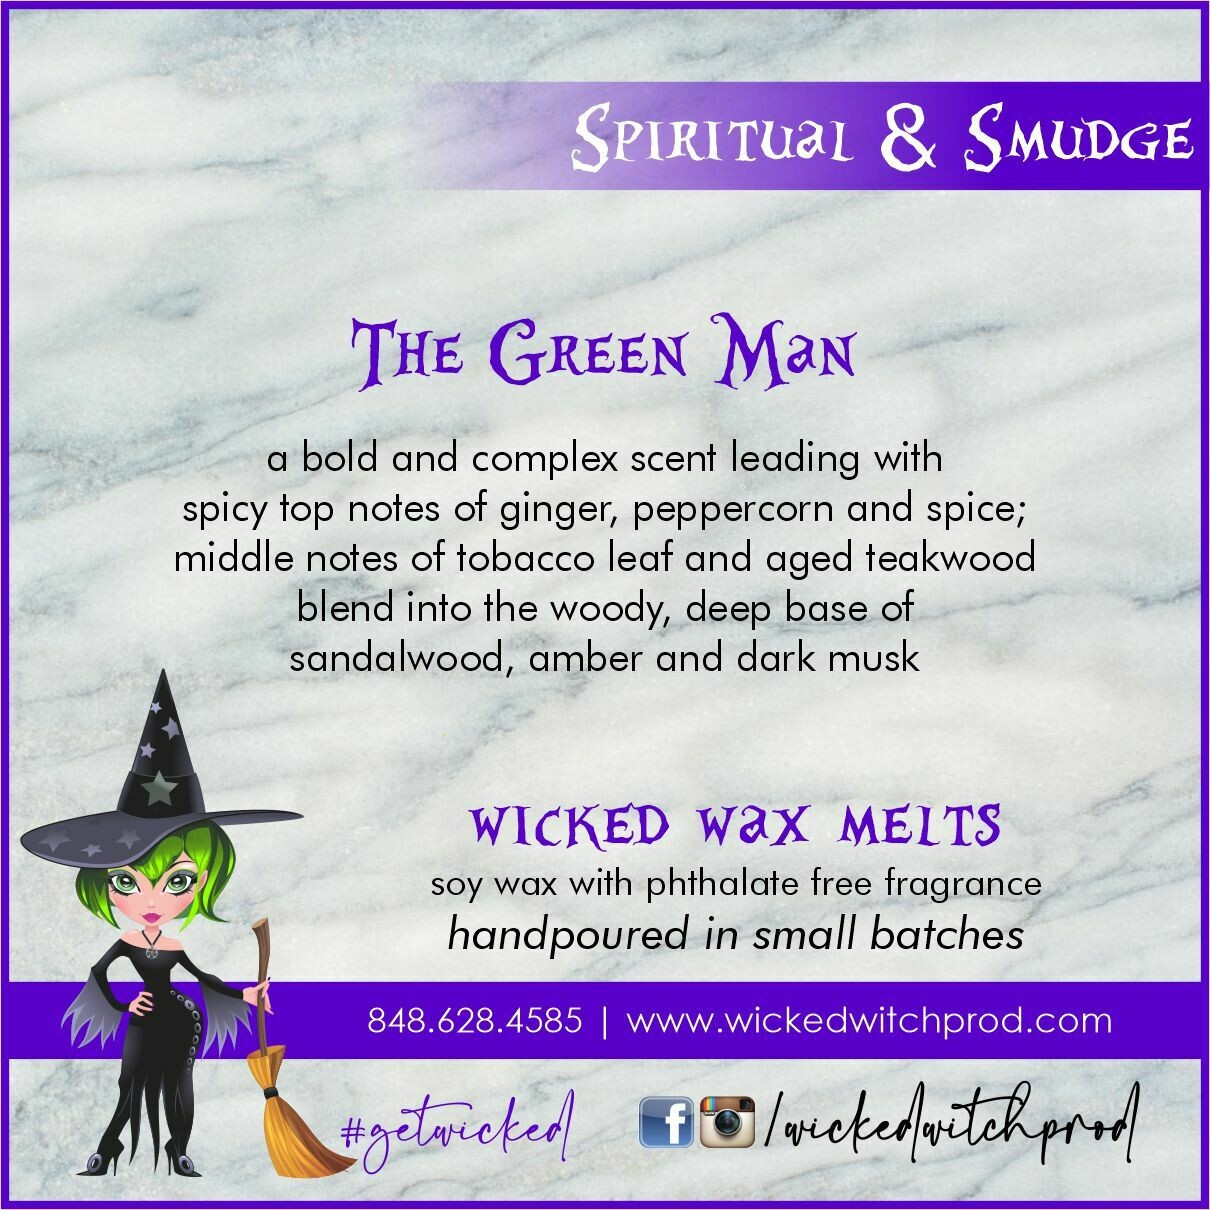 The Green Man Wicked Wax Melts